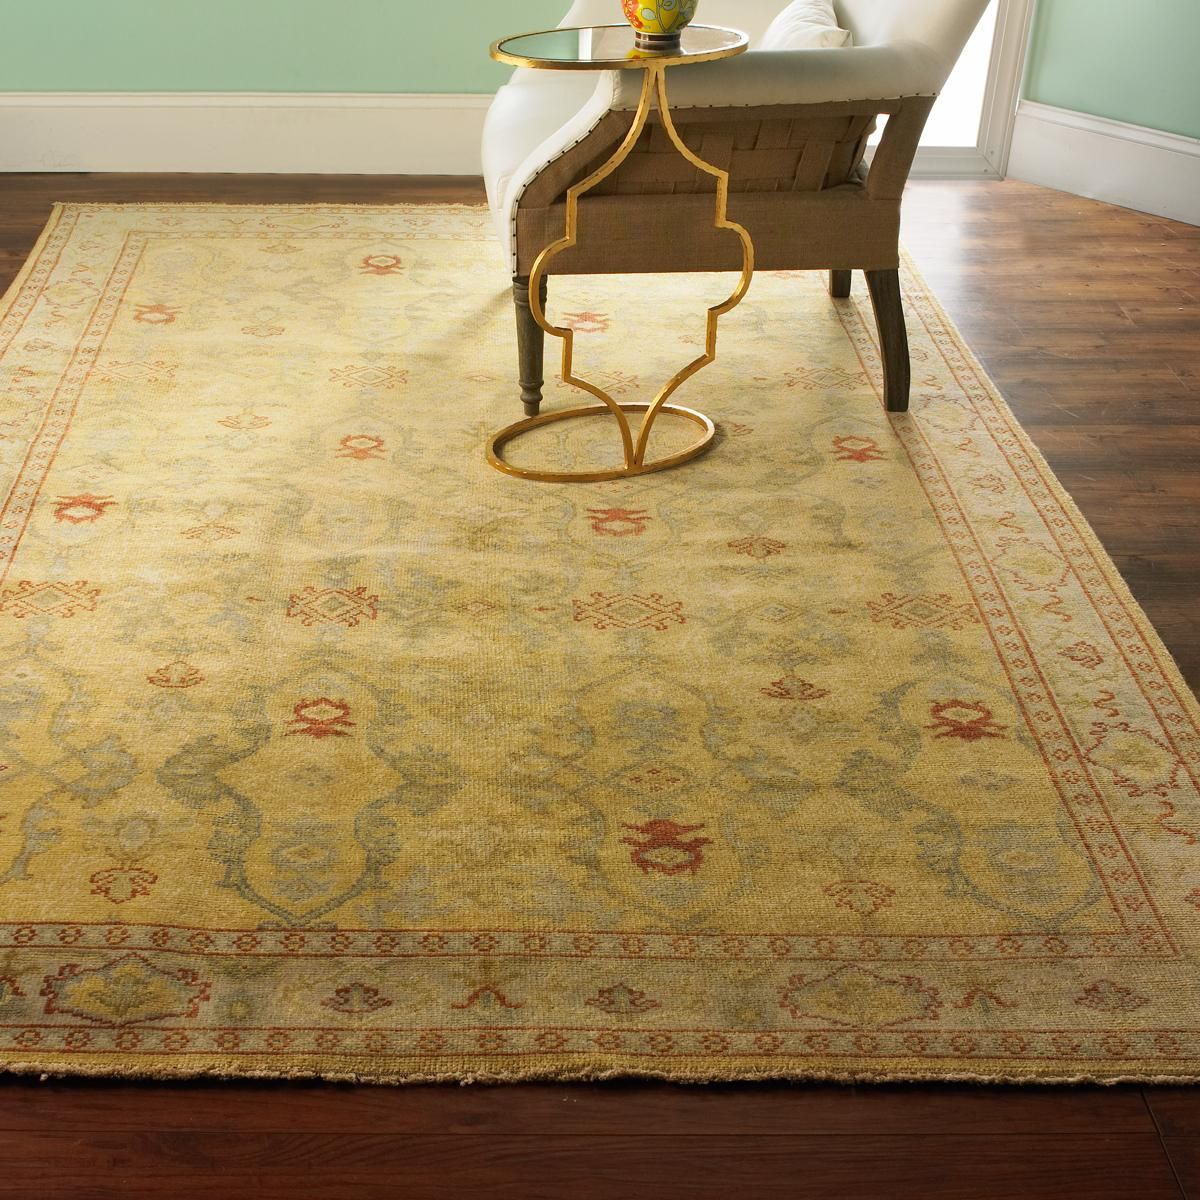 Silky Oushak In Pastel Yellow With Gray Warm Pastels Shimmer In This Silky Wool Oushak Rug With Luxurious Elegance Vintage Inspired Rugs Rugs Vintage Area Rugs